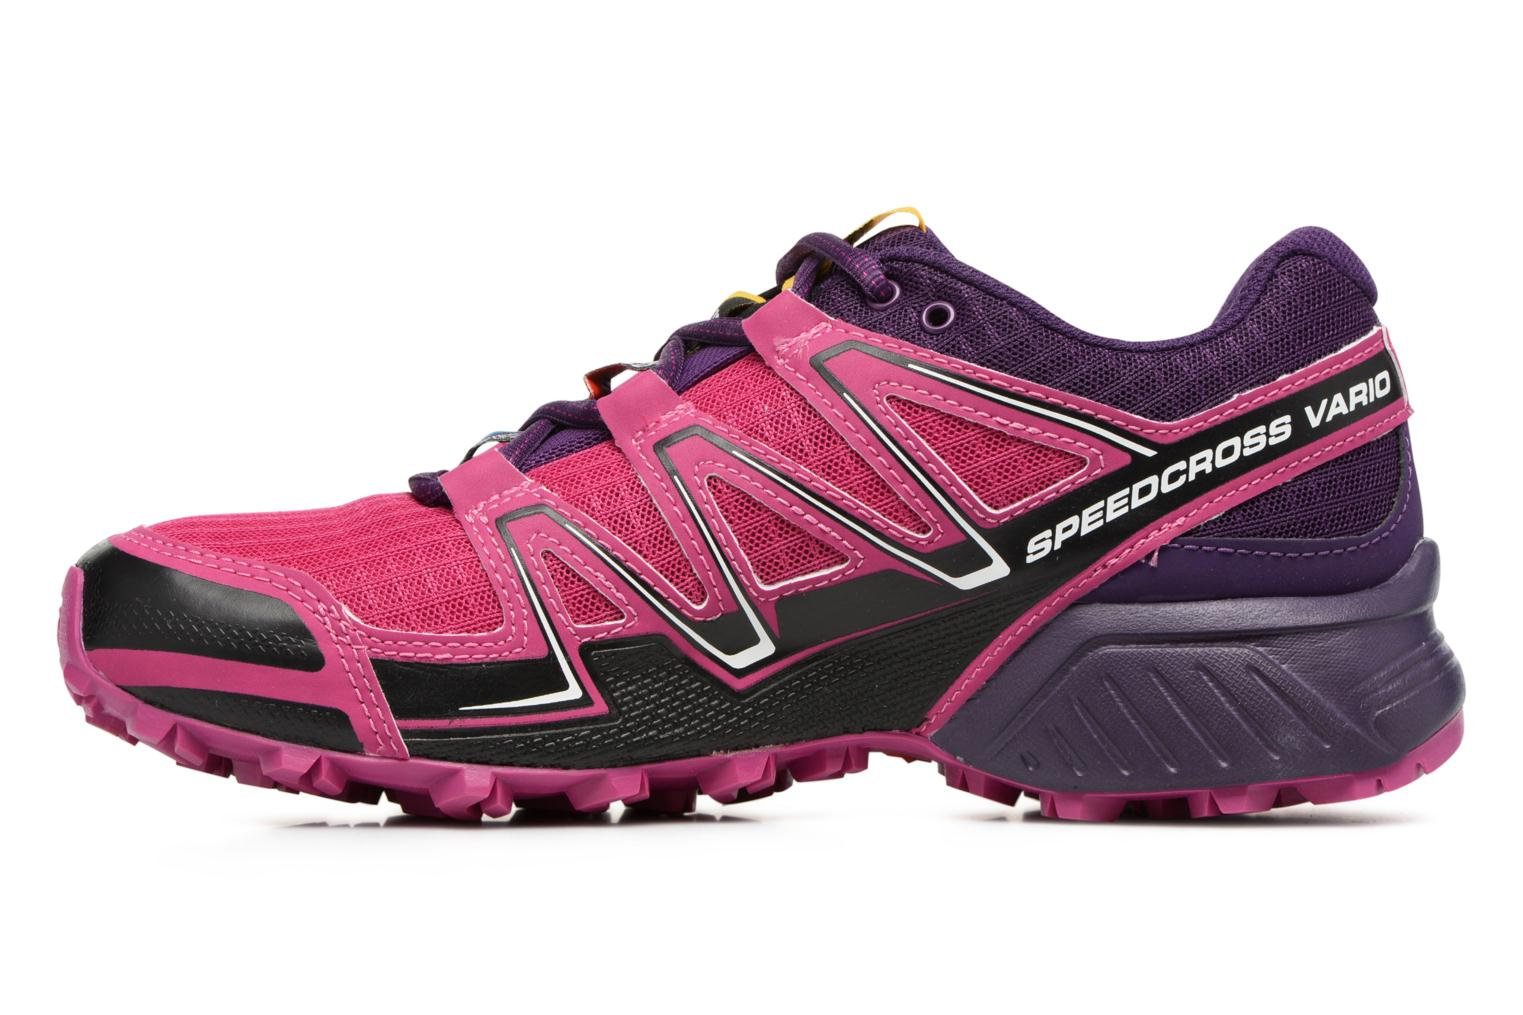 Chaussures de sport Salomon SpeedCross Vario W Rose vue face